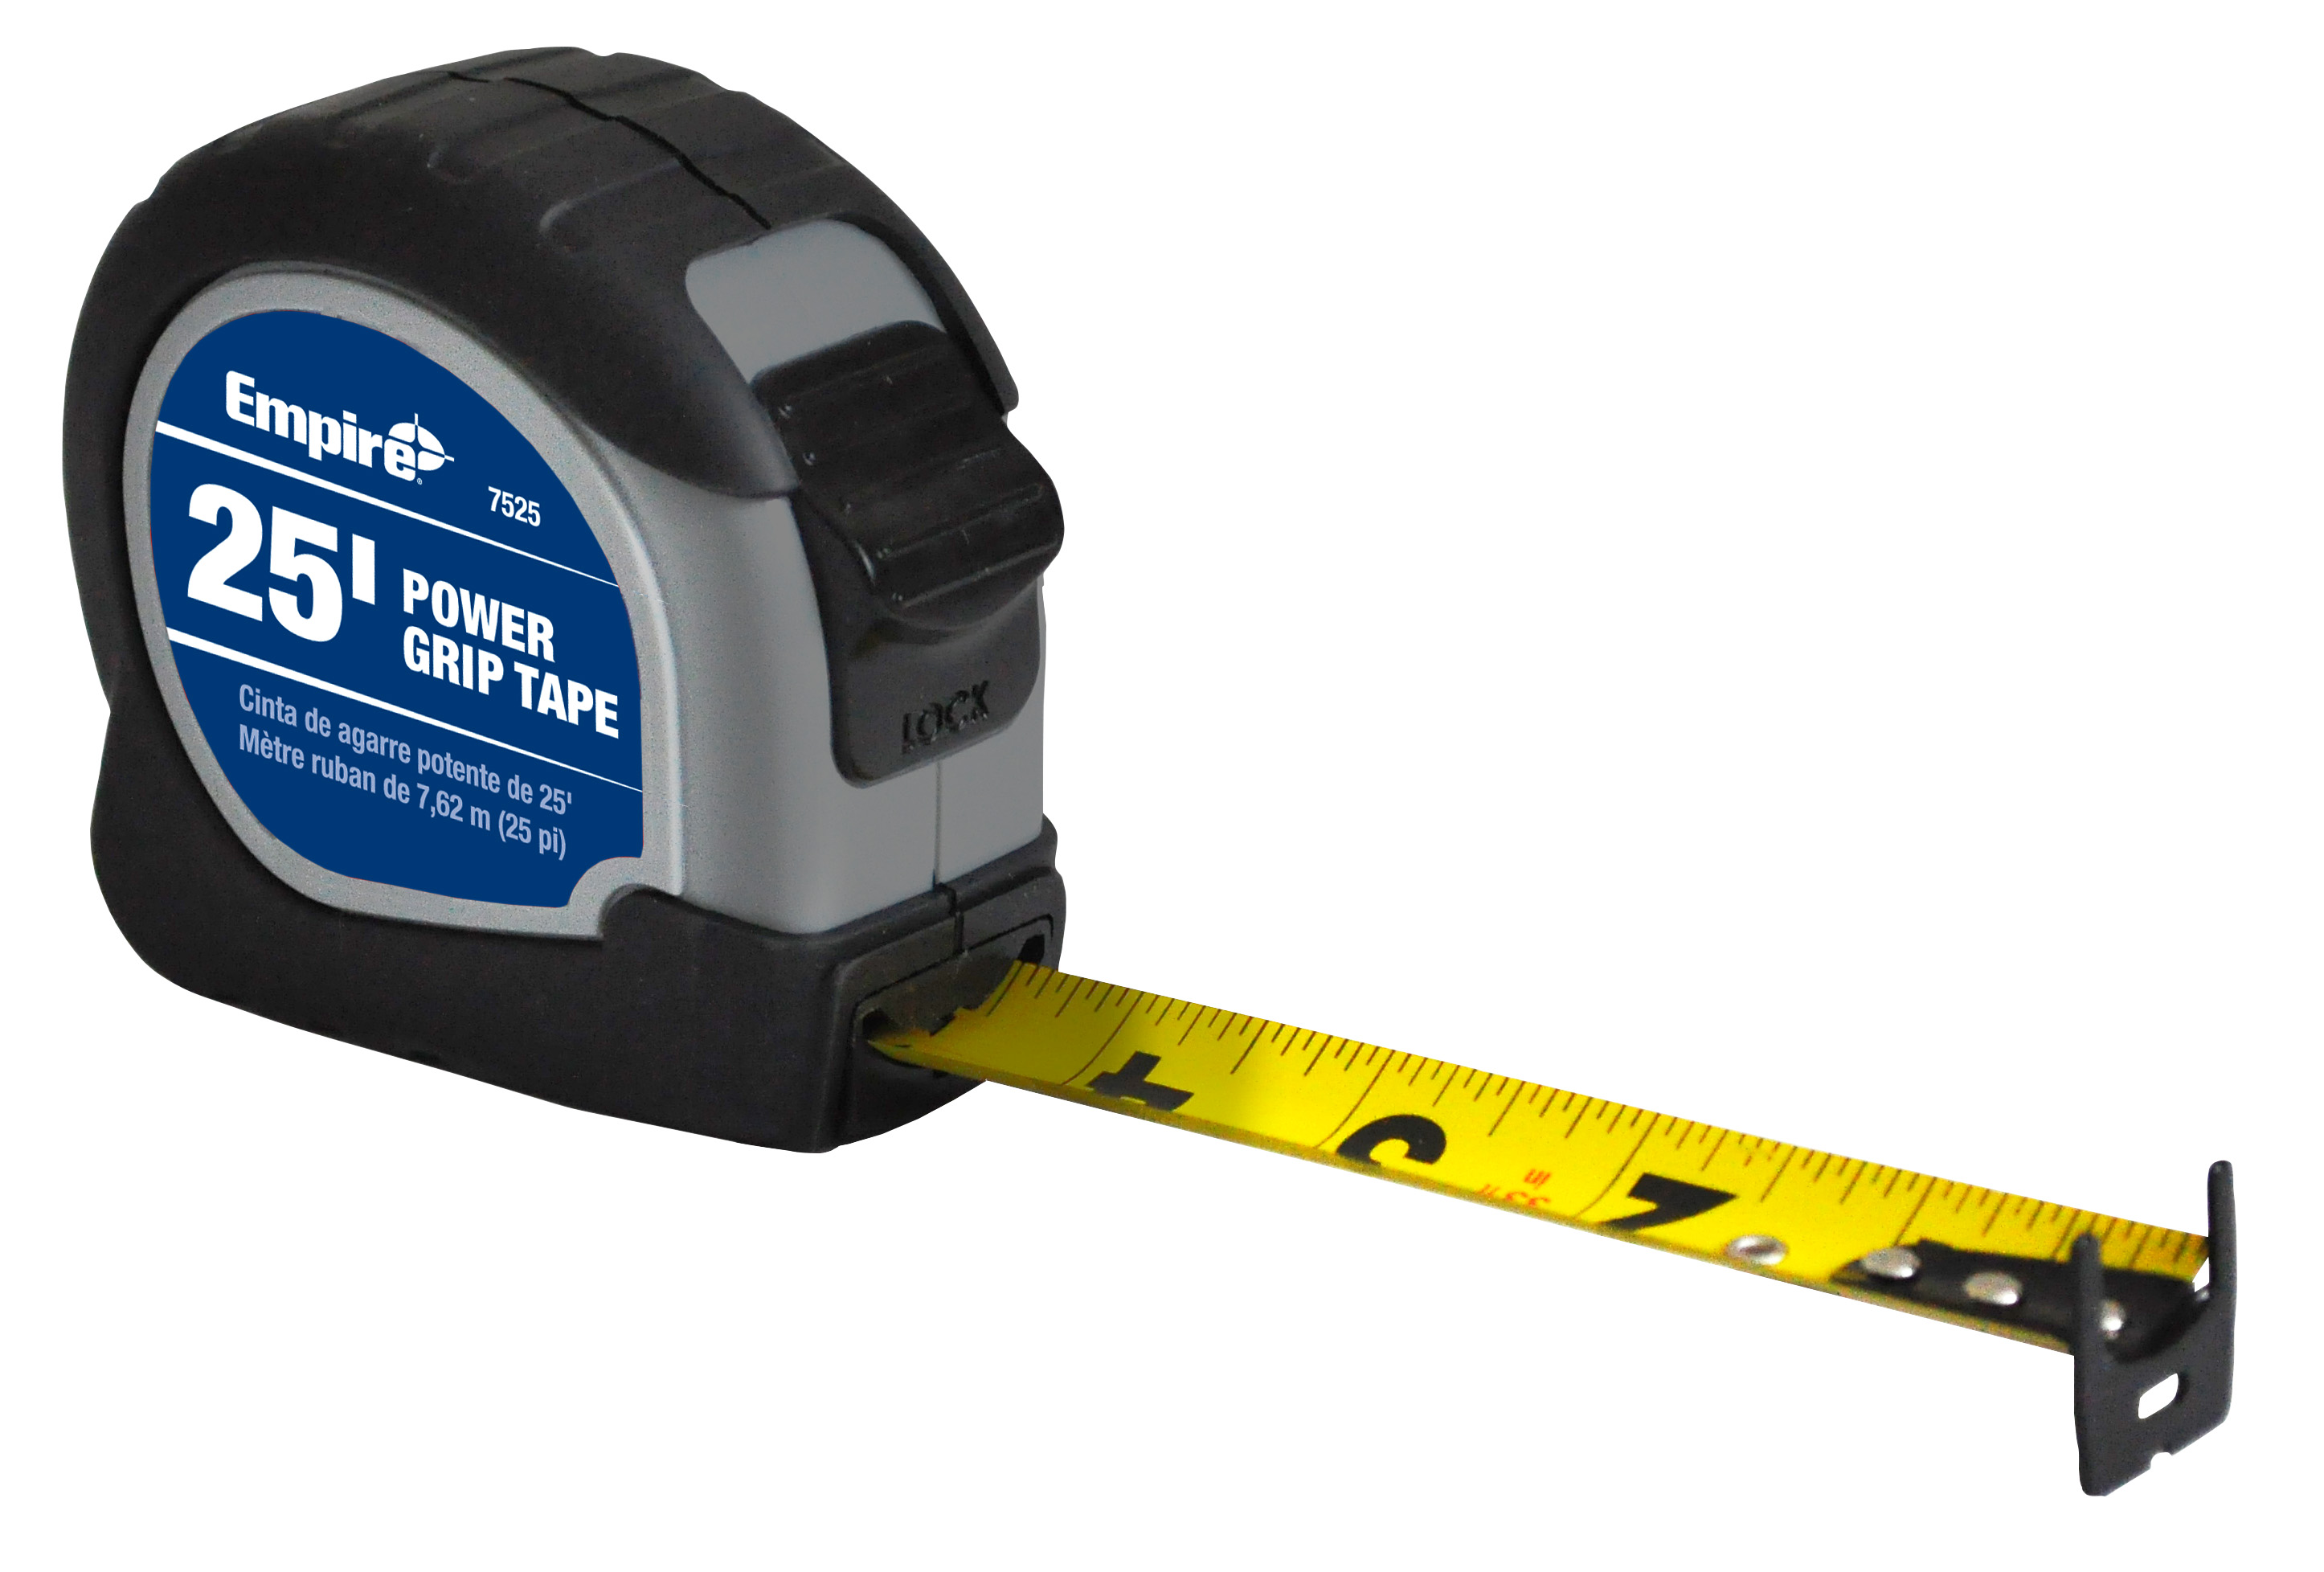 Milwaukee® 7525 Powergrip Measuring Tape With Belt Clip, 25 ft L x 1 in W Blade, Steel Blade, Imperial Measuring System, 1/16 in Graduation